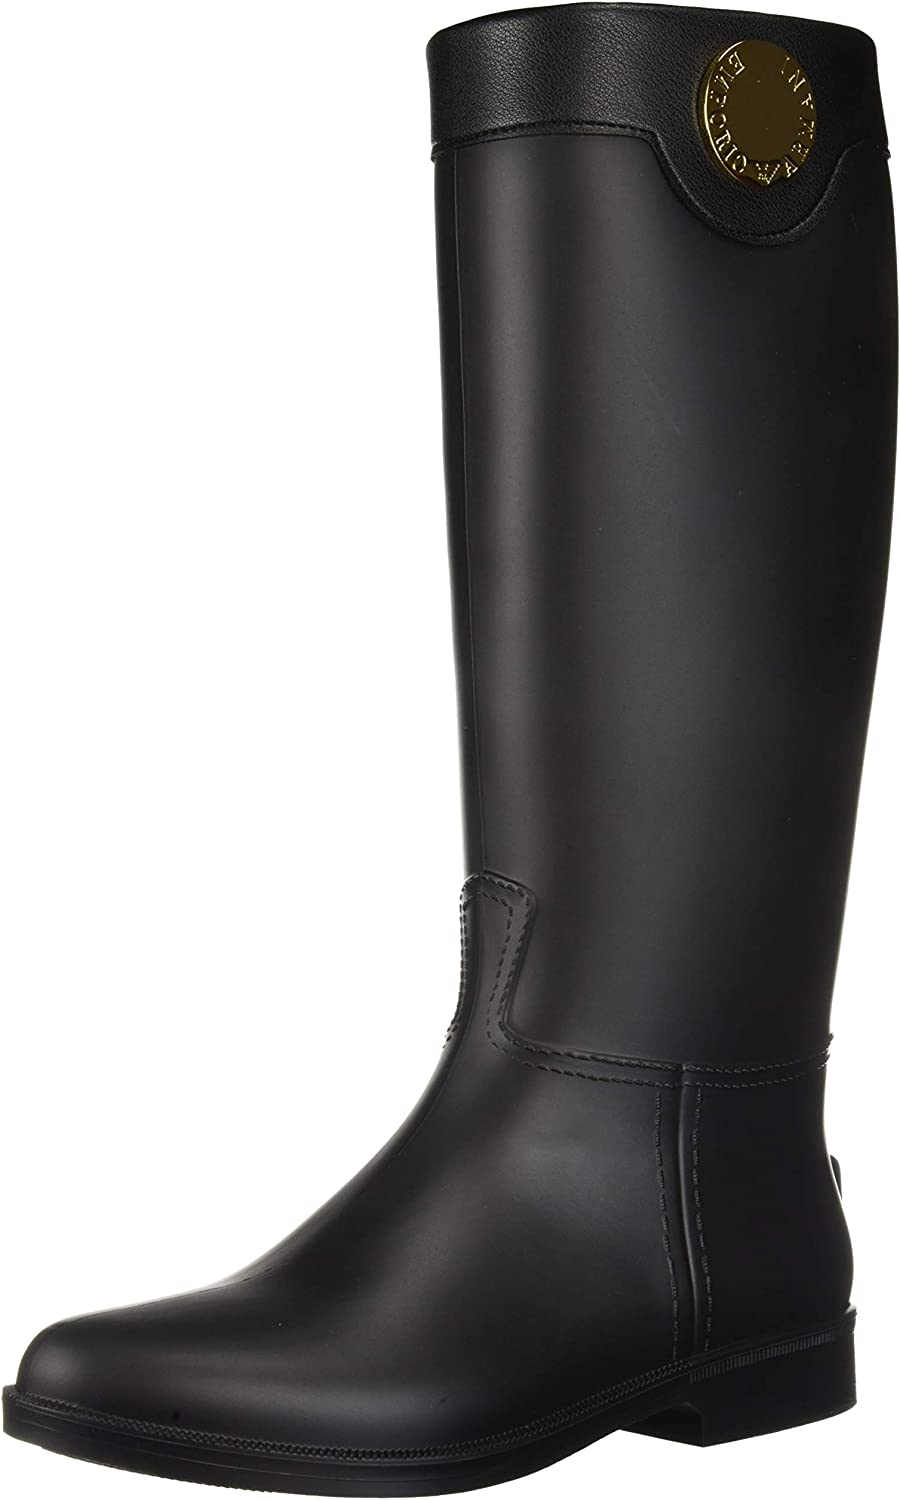 Emporio Armani Womens Tall Rain Boot